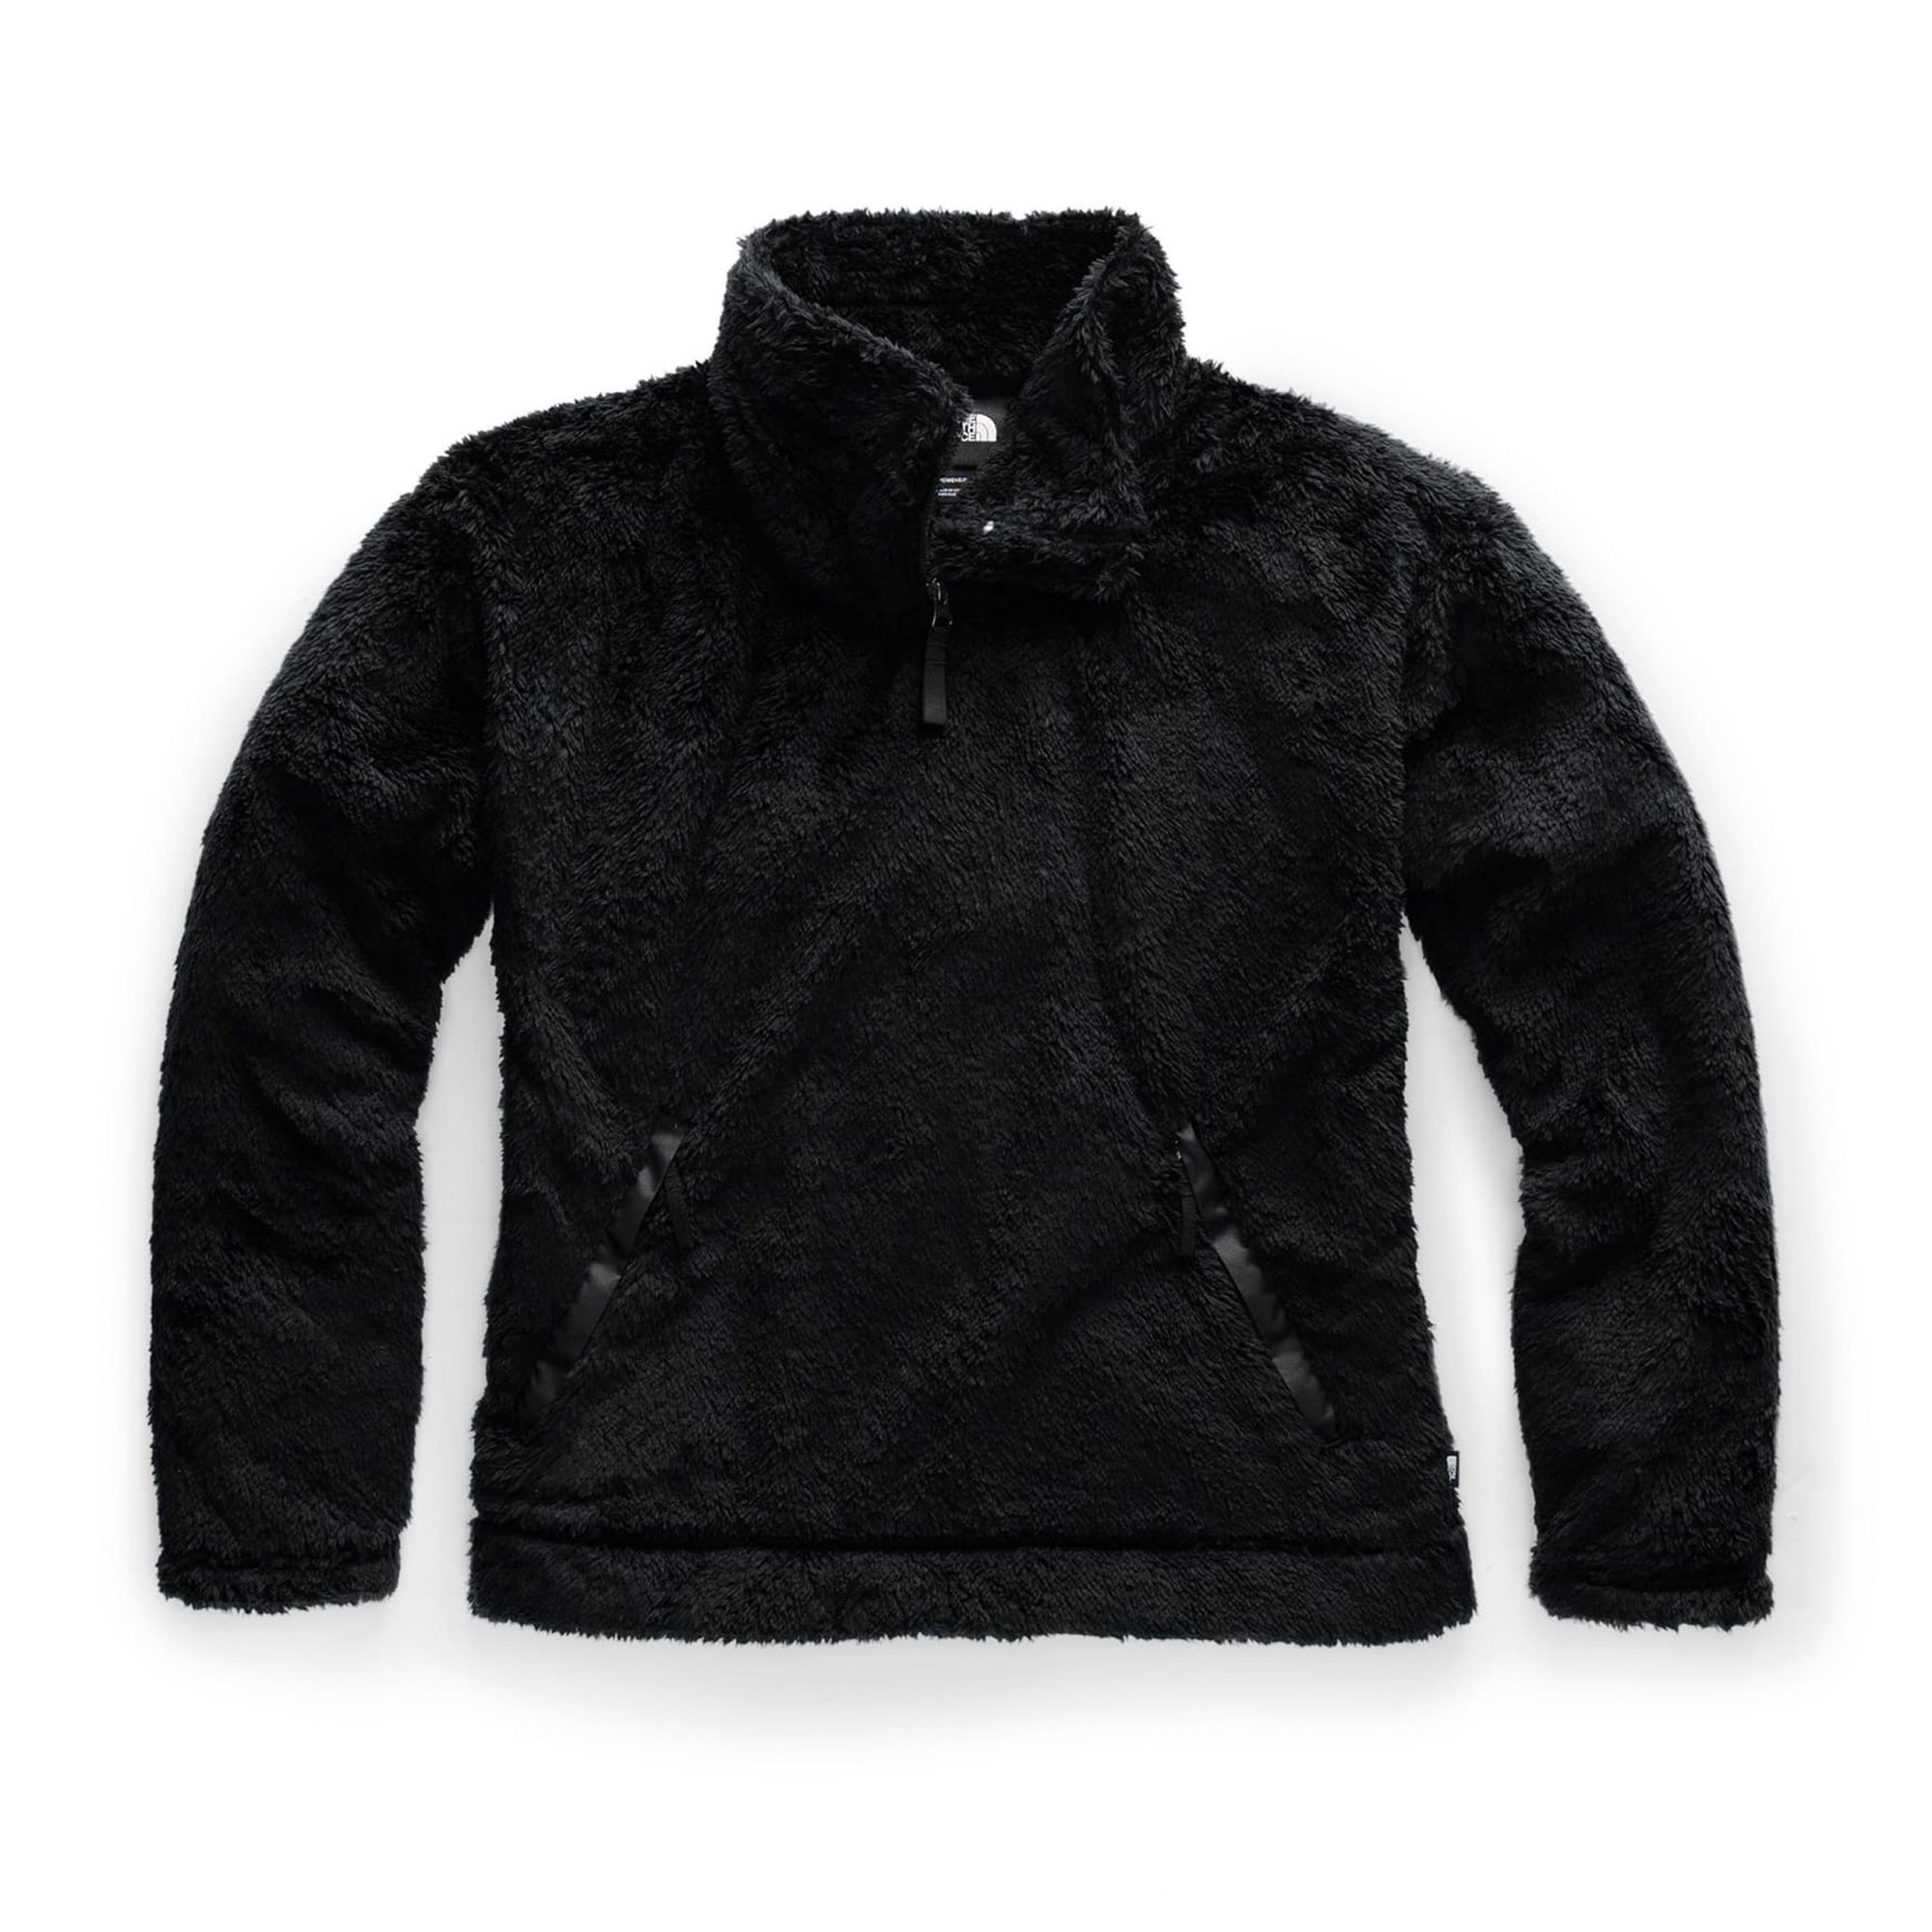 The North Face Furry Fleece Jacket